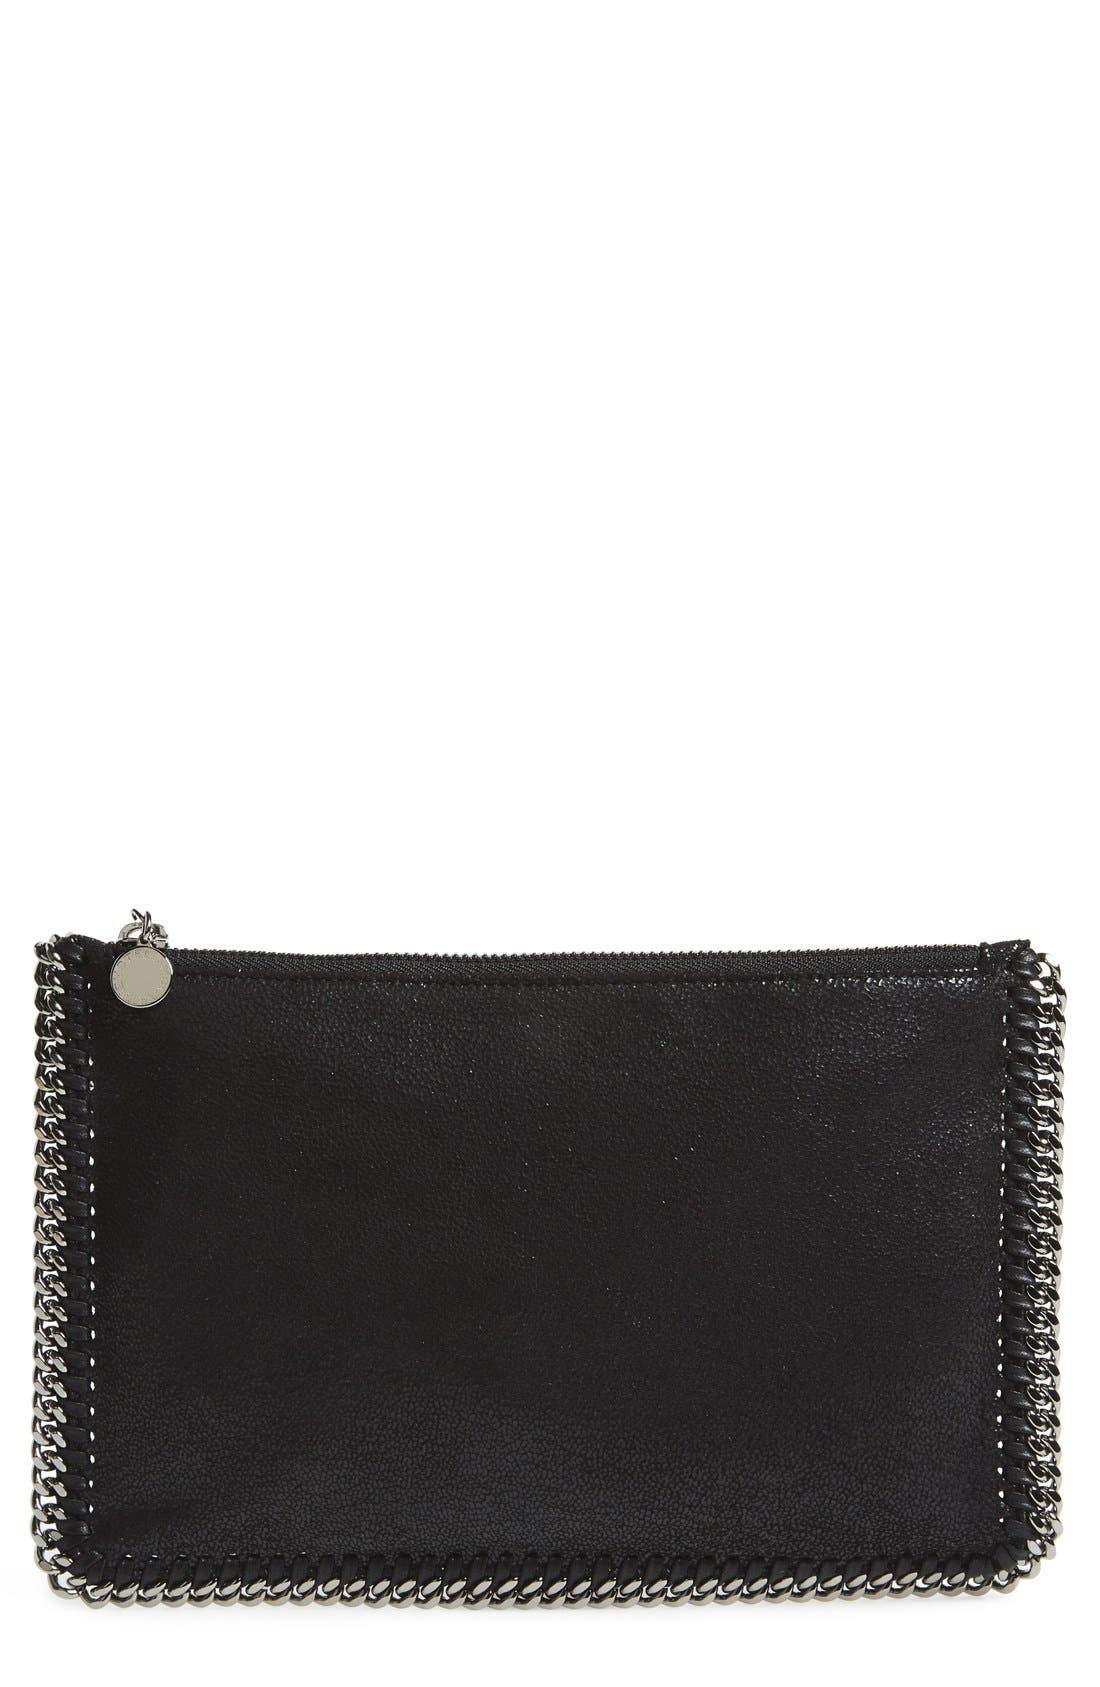 STELLA MCCARTNEY 'Falabella' Faux Leather Pouch with Convertible